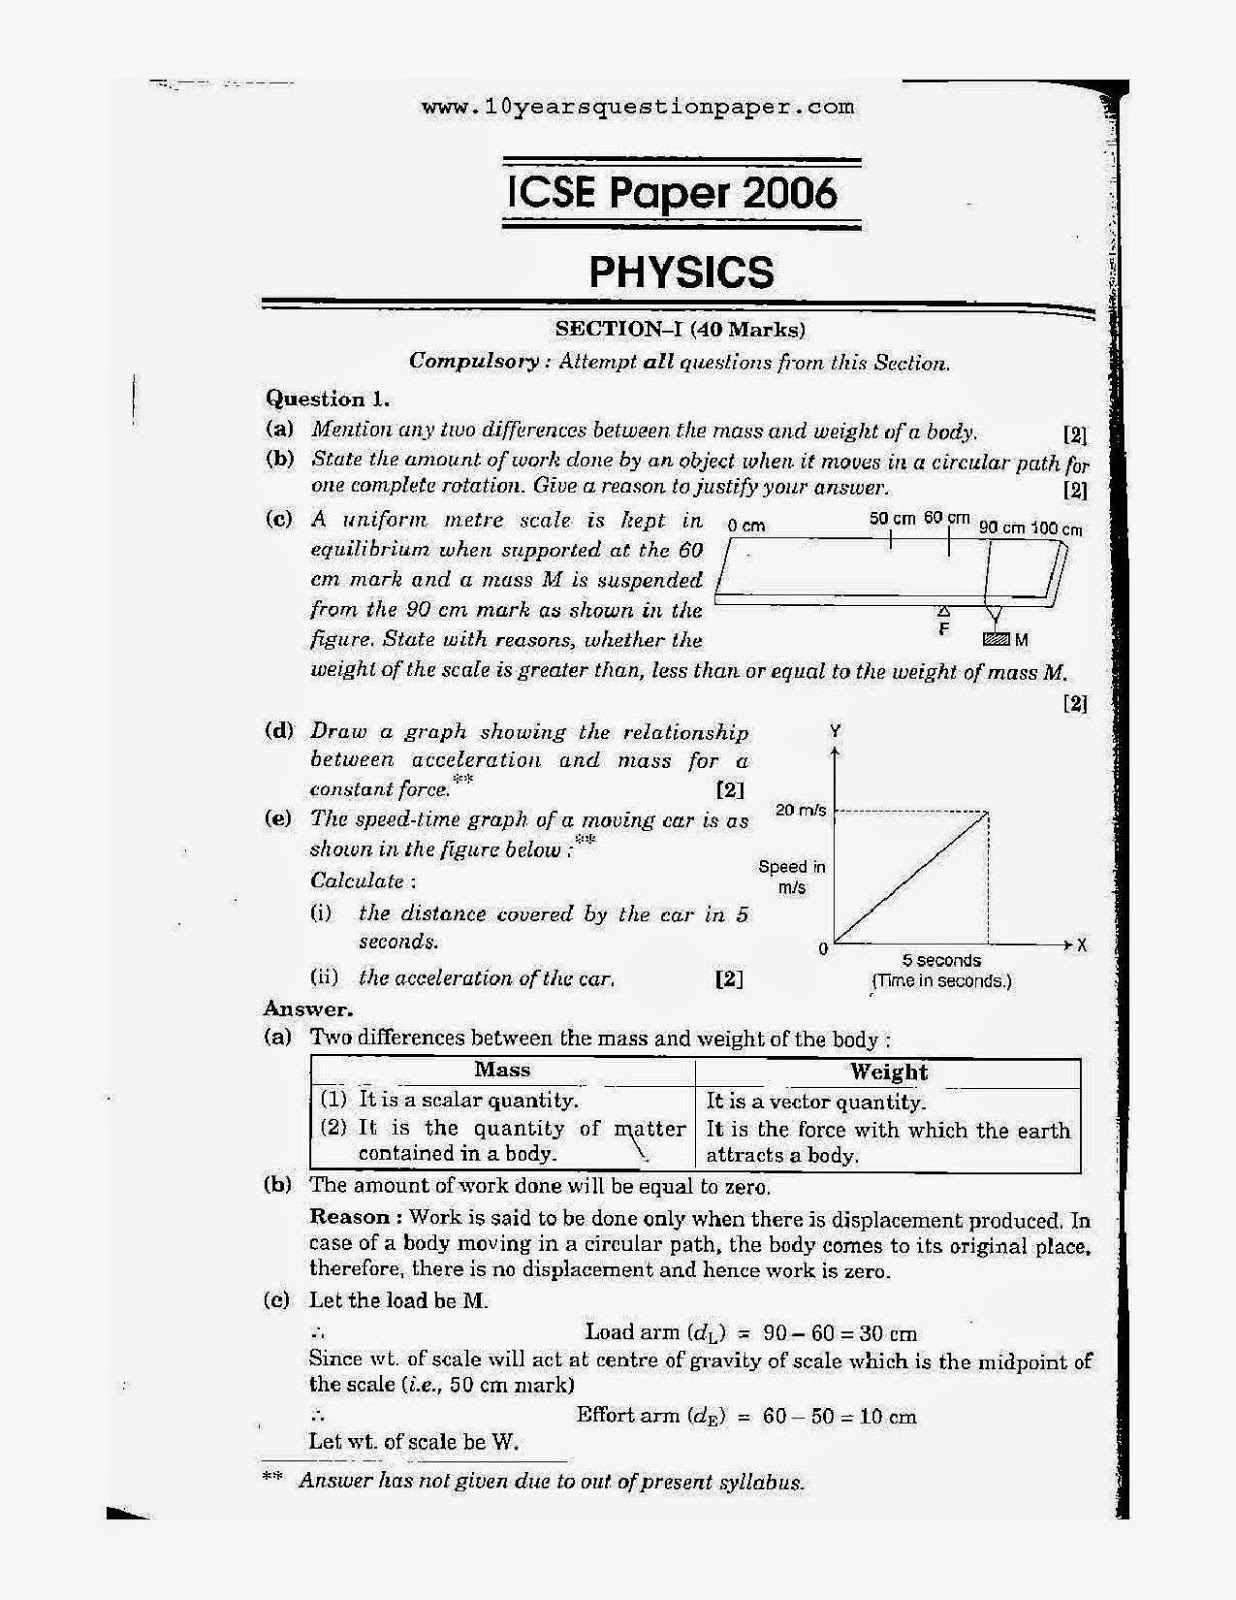 sydney physics student paper sample